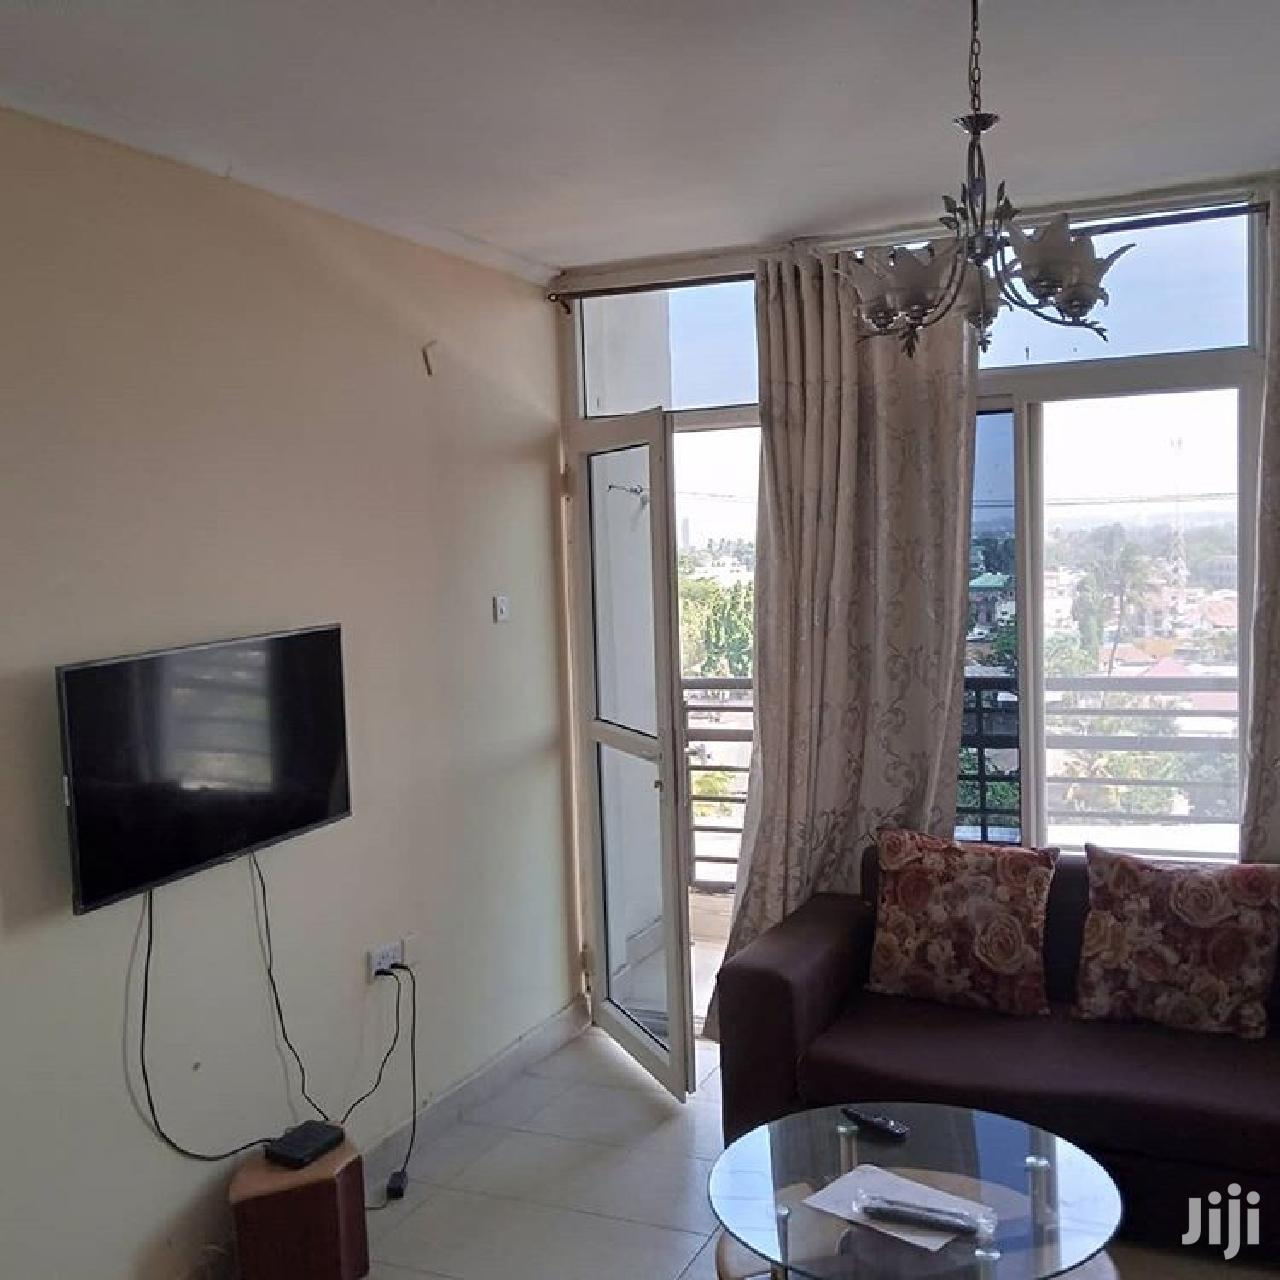 2 Bedrooms Apartment For Rent Msasani | Houses & Apartments For Rent for sale in Msasani, Kinondoni, Tanzania